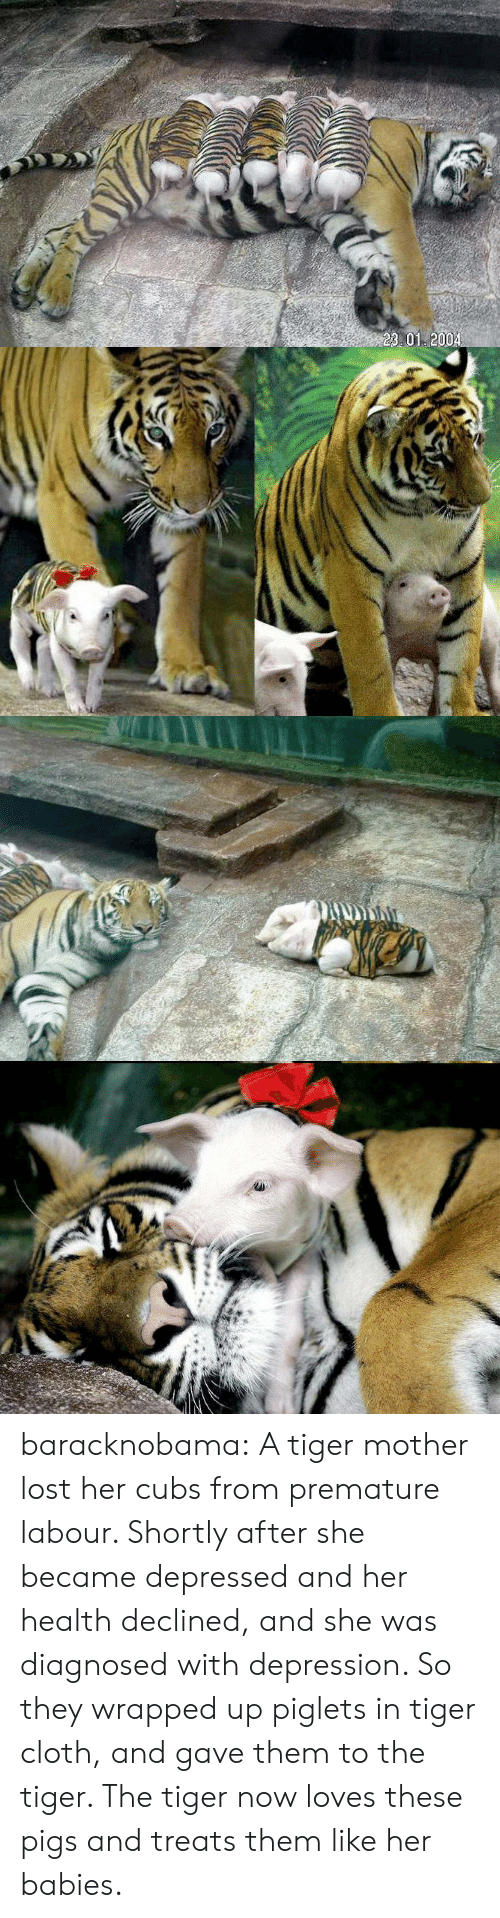 Tumblr, Lost, and Blog: 23 01 2004 baracknobama: A tiger mother lost her cubs from premature labour. Shortly after she became depressed and her health declined, and she was diagnosed with depression. So they wrapped up piglets in tiger cloth, and gave them to the tiger. The tiger now loves these pigs and treats them like her babies.